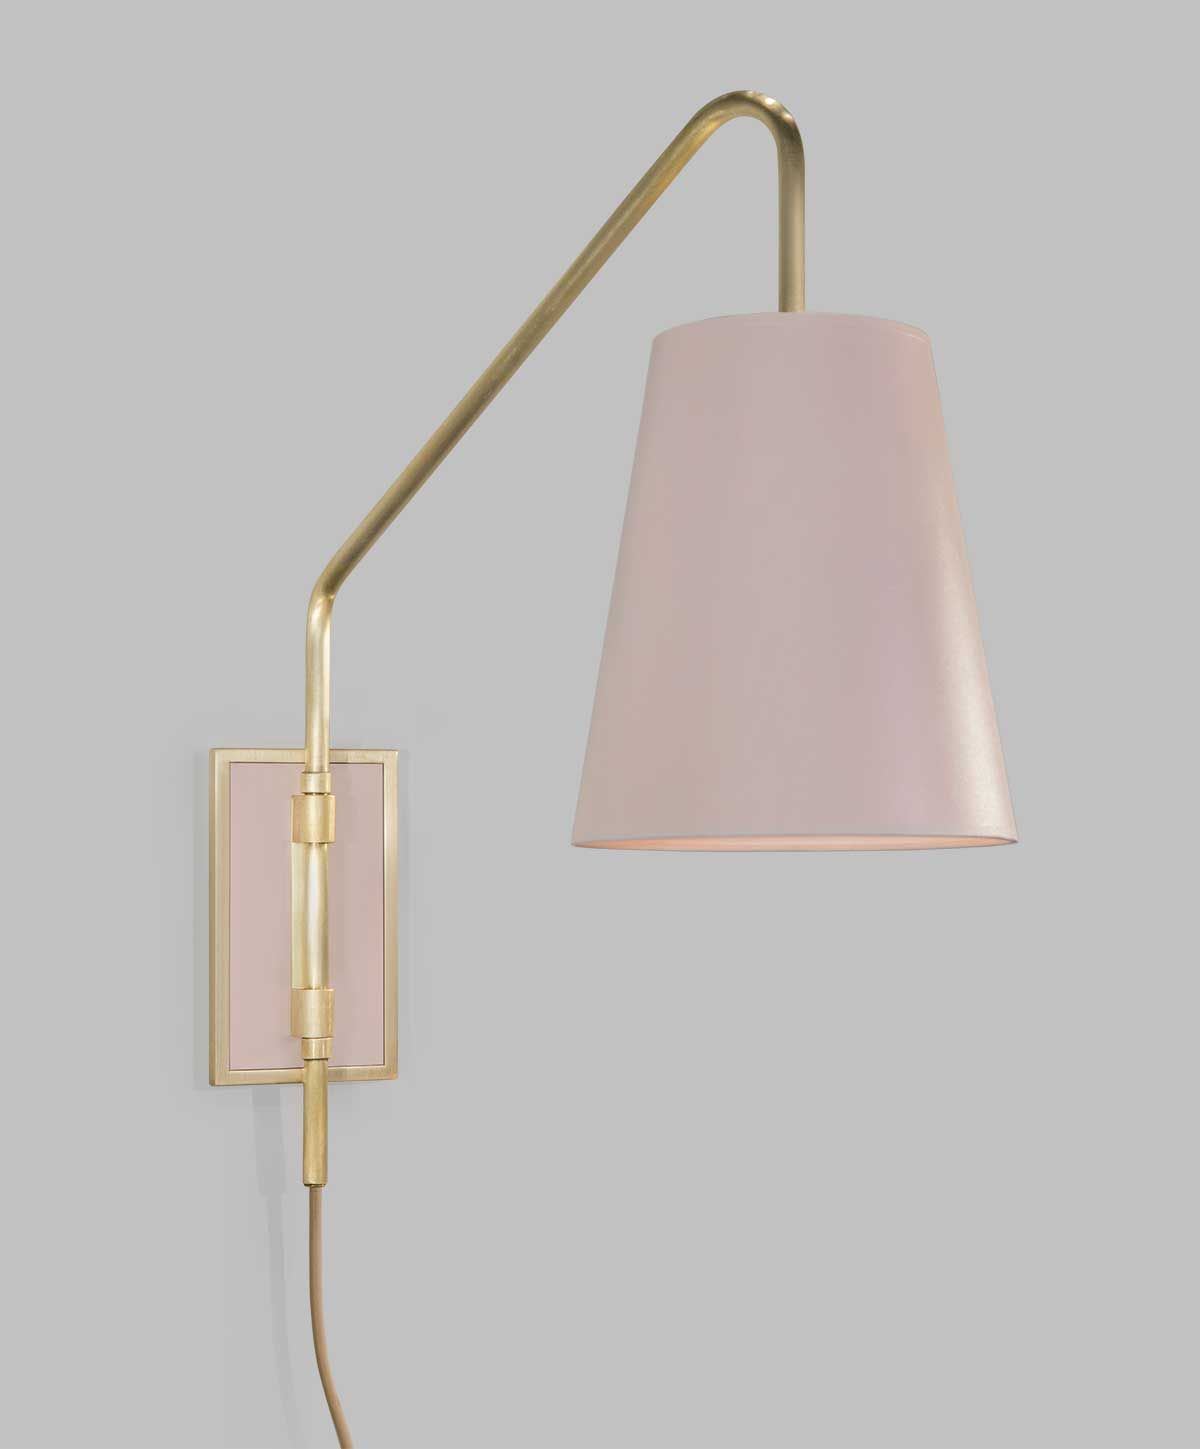 Audley light fixture from The Urban Electric